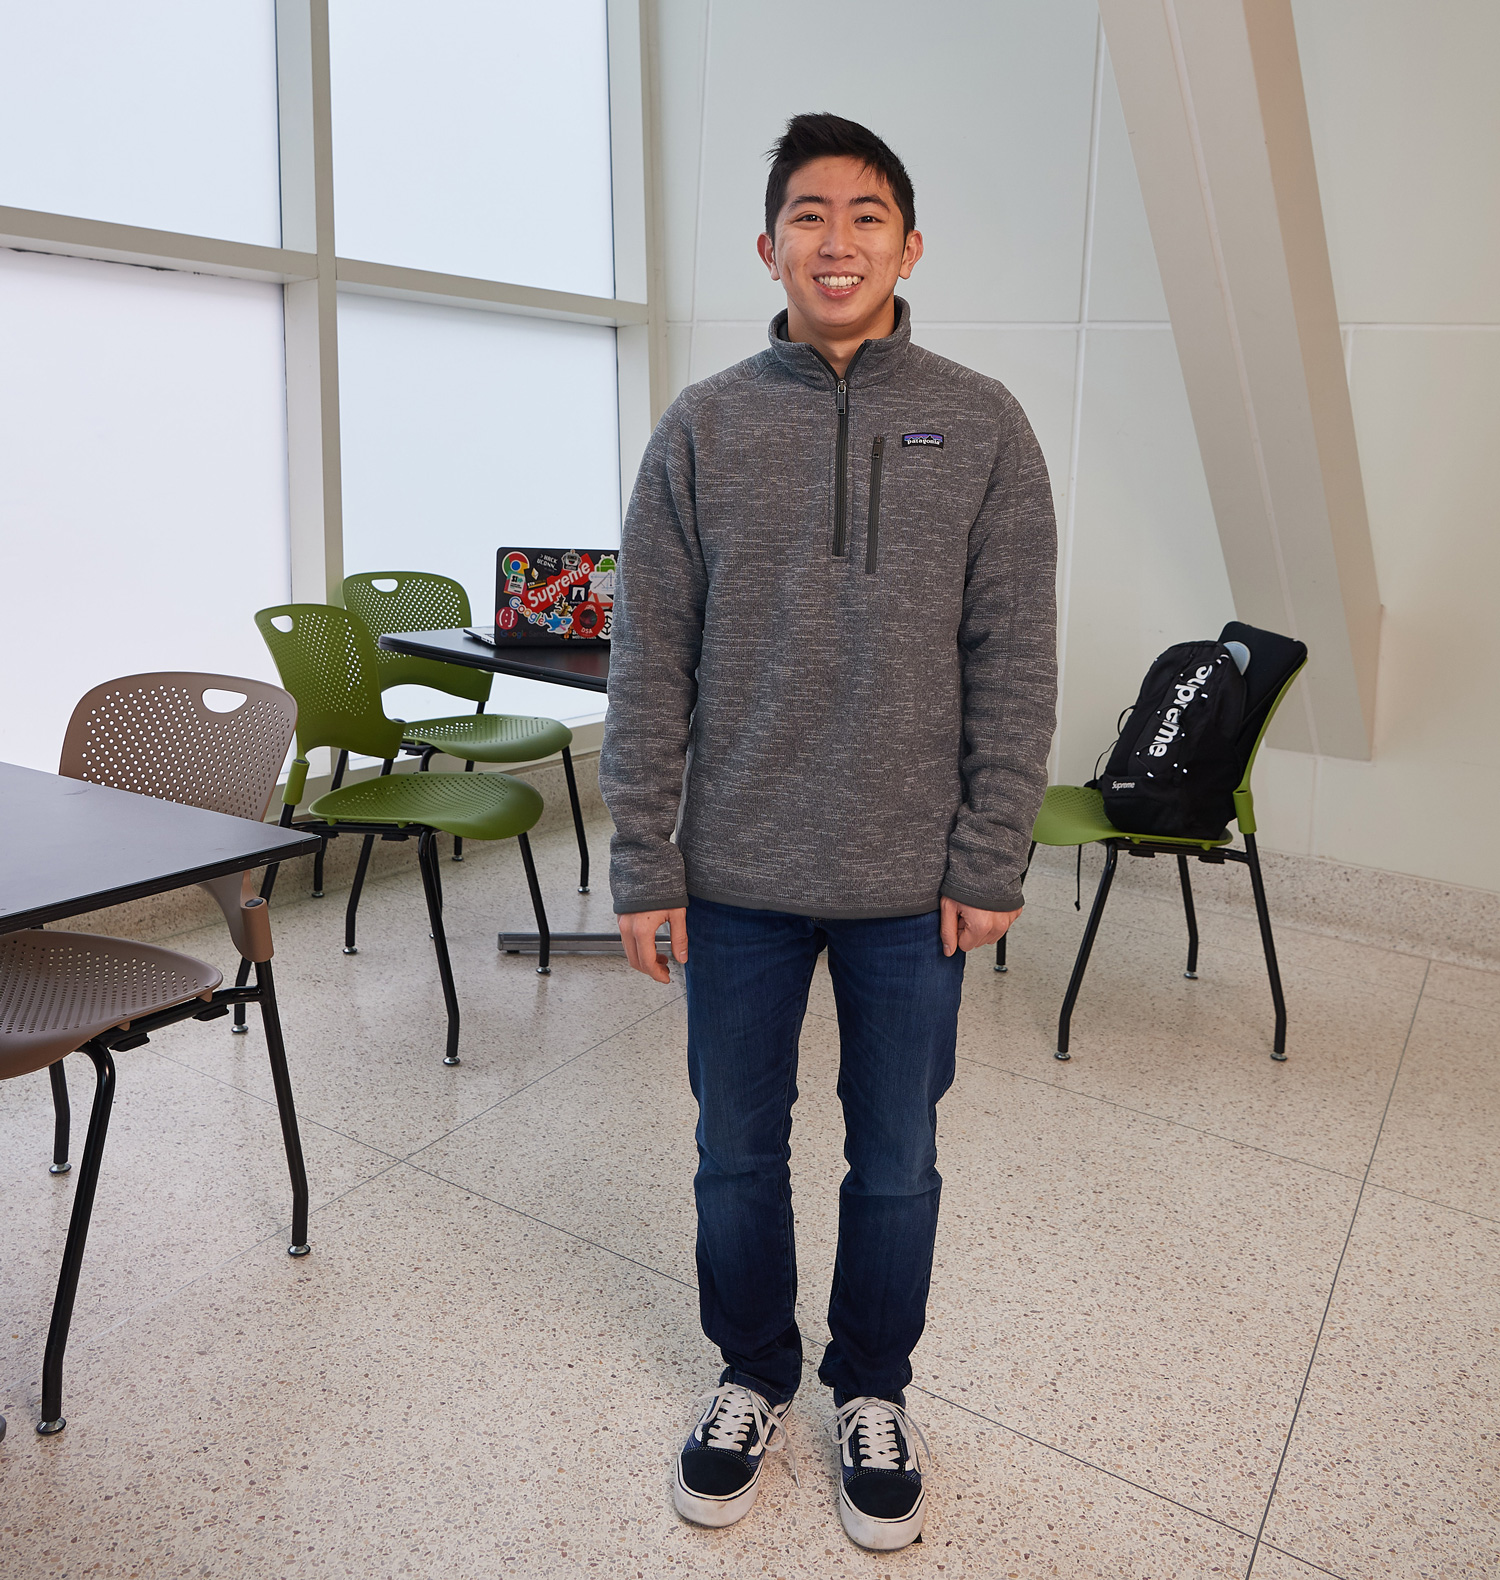 Charles Ira stands in the atrium of the Stamford campus